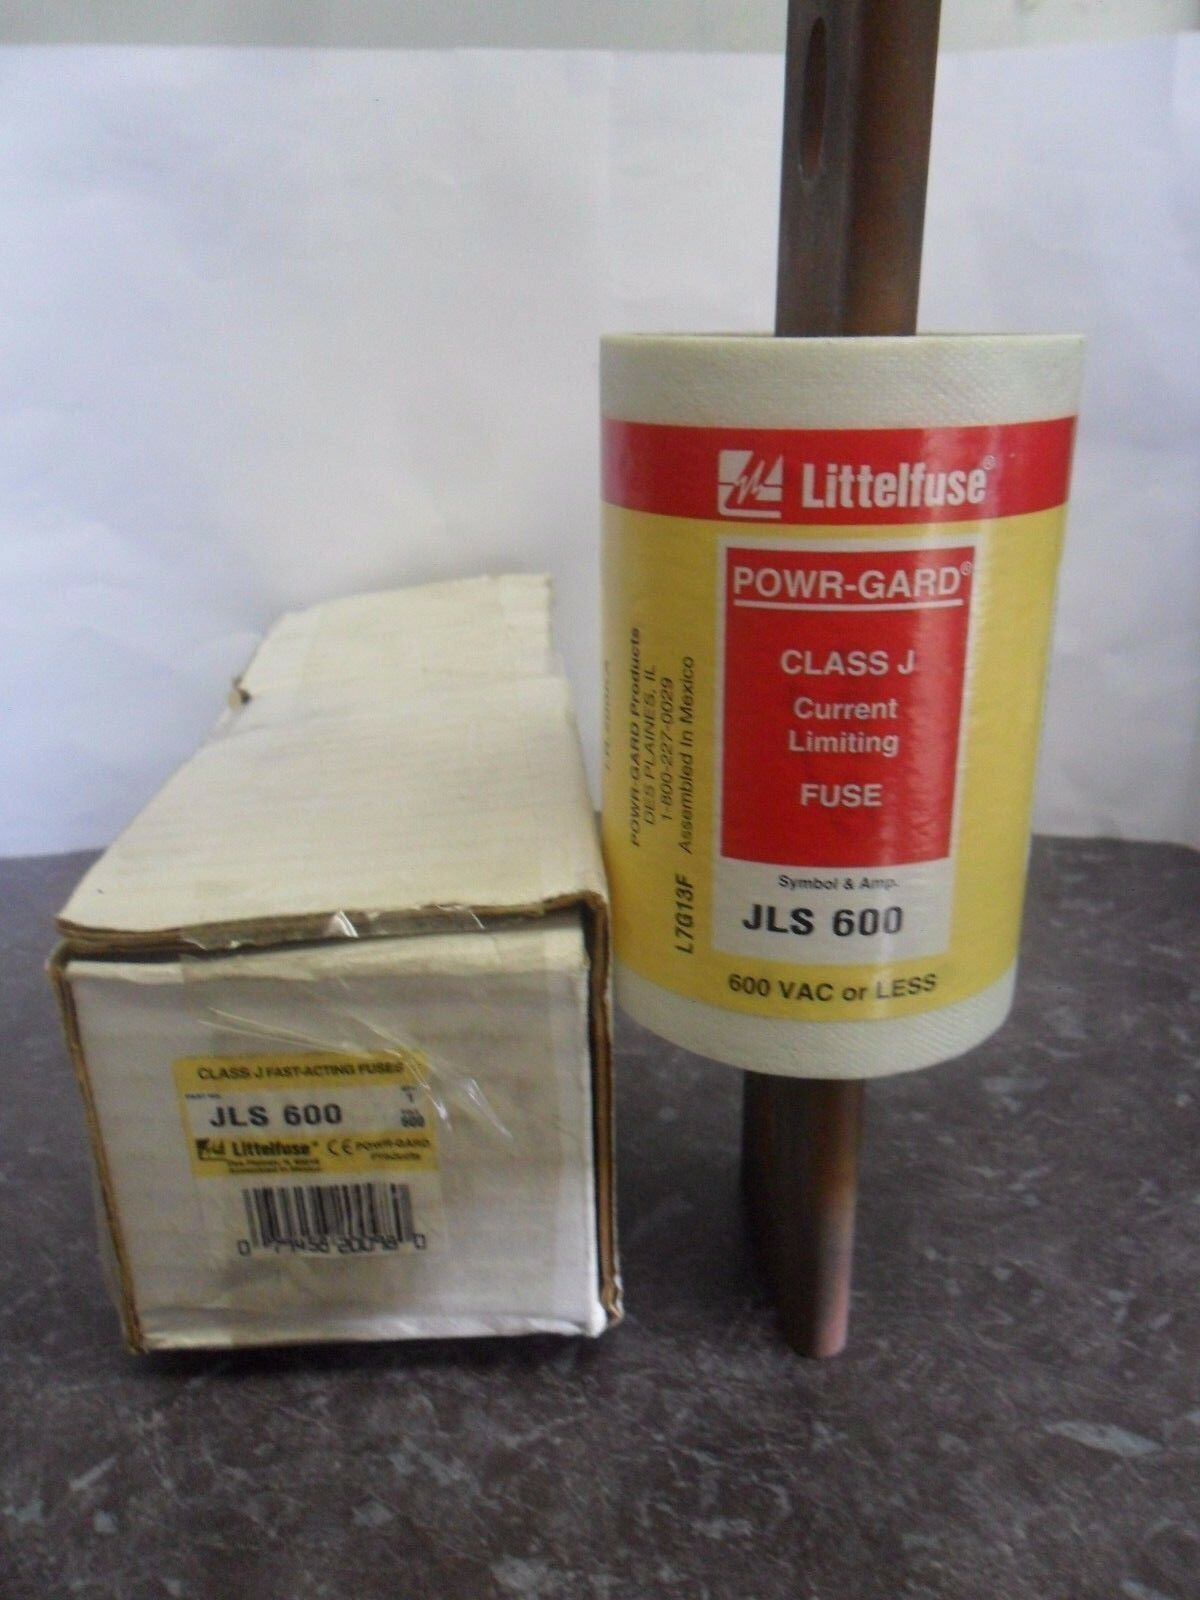 Littelfuse Jls 600 Amp Fuse Class J Bussmann Jks Volts Box Norton Secured Powered By Verisign